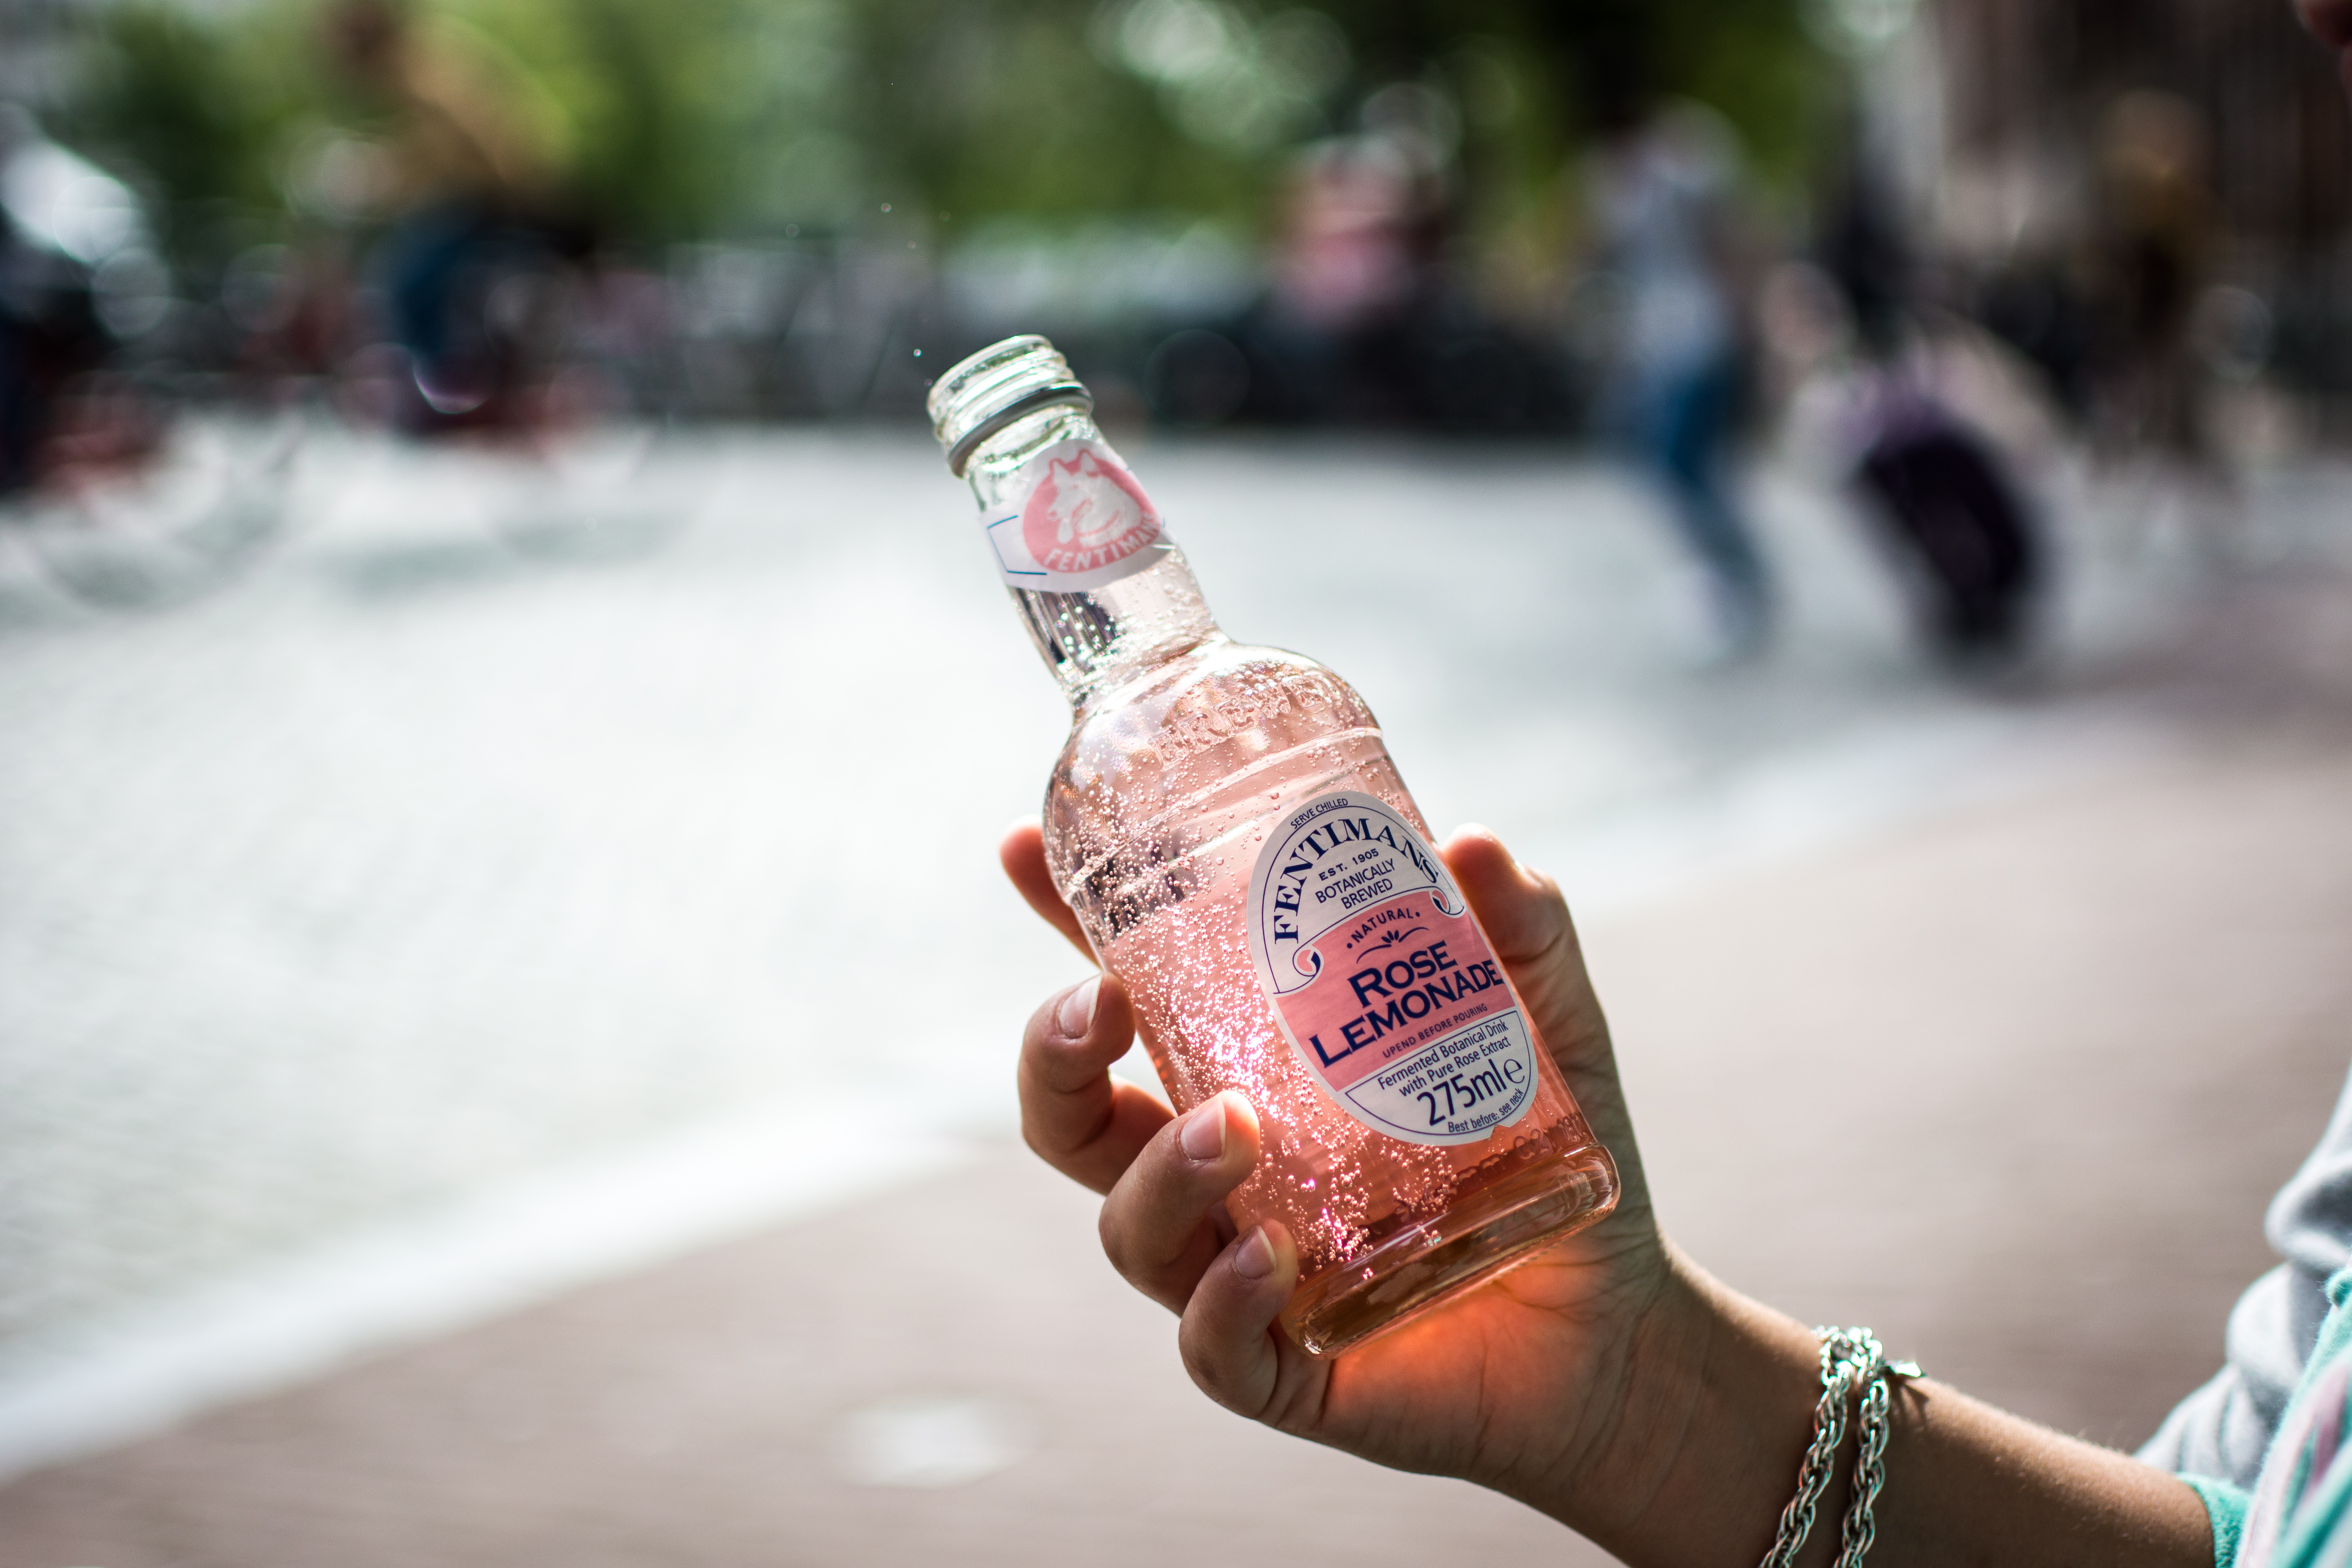 Rose lemonade in Amsterdam